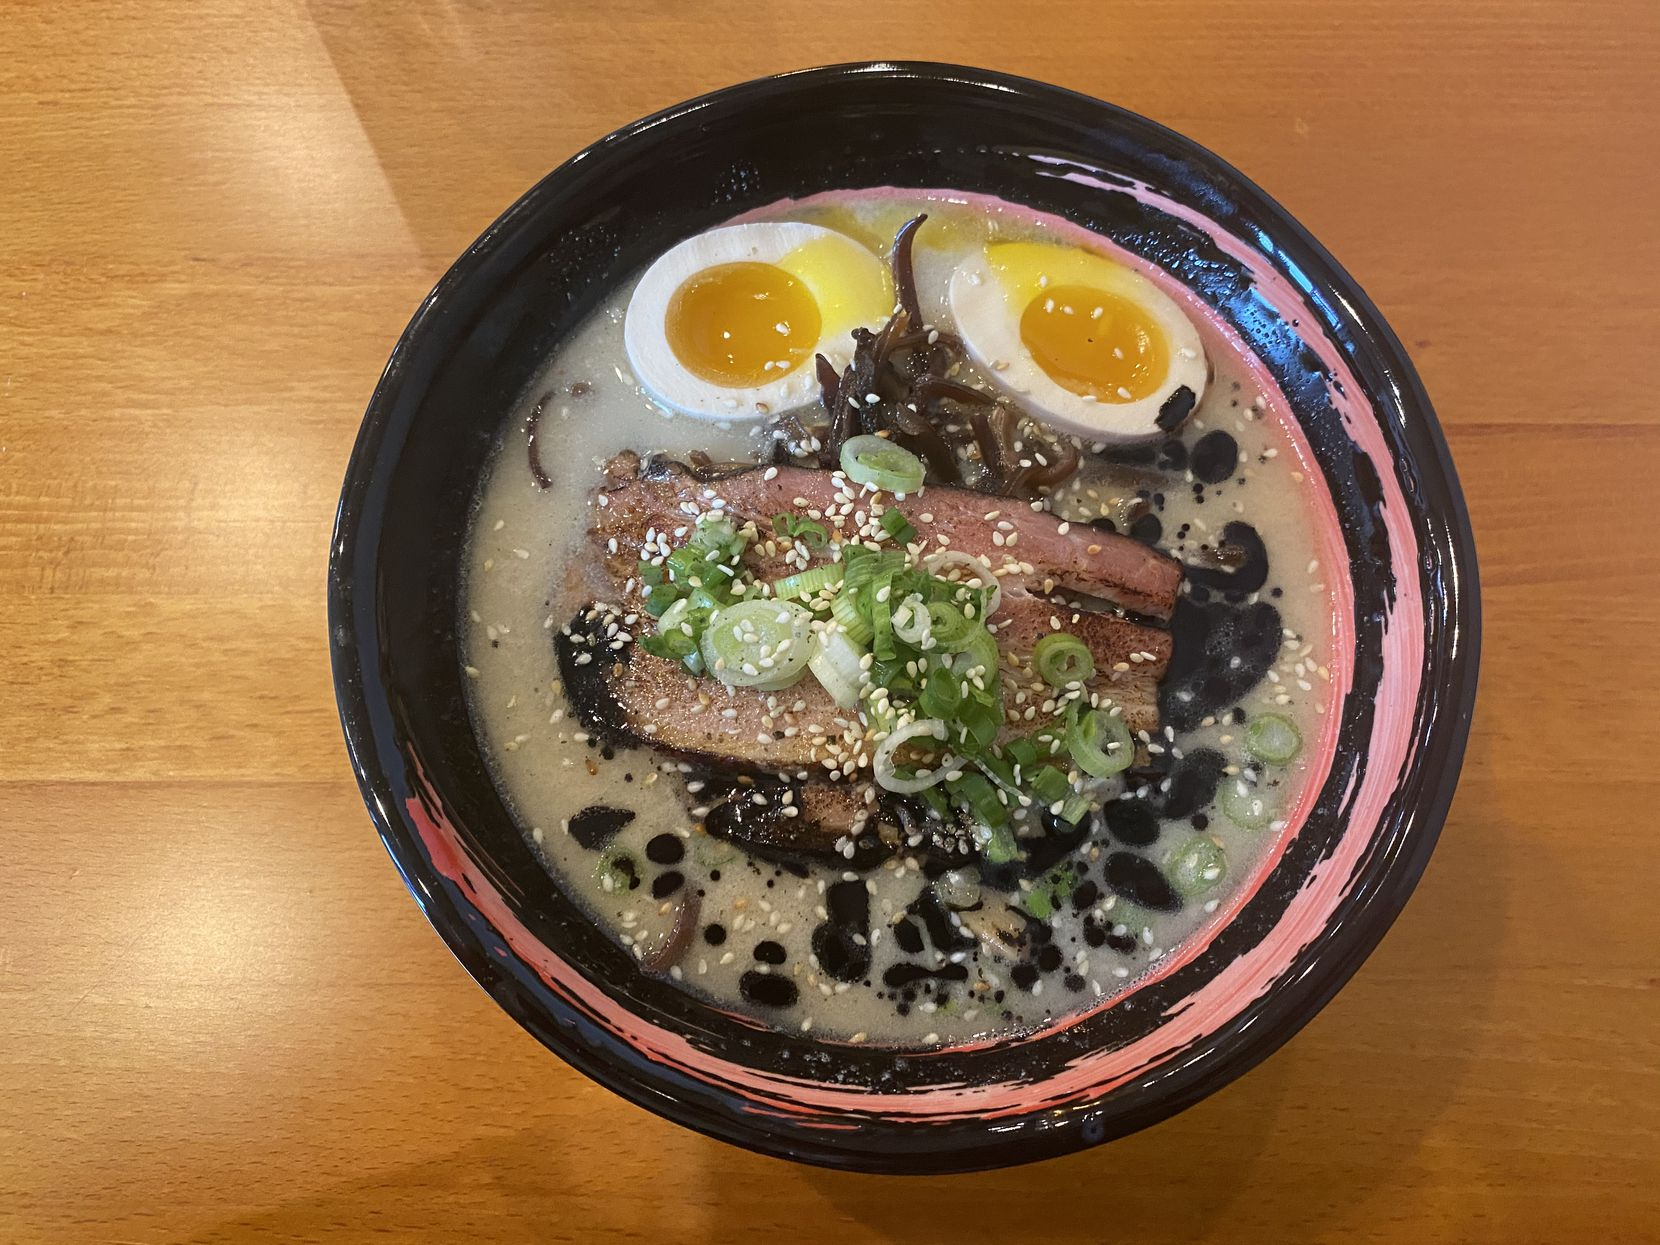 Put Kintaro in Arlington on your list of places to try.